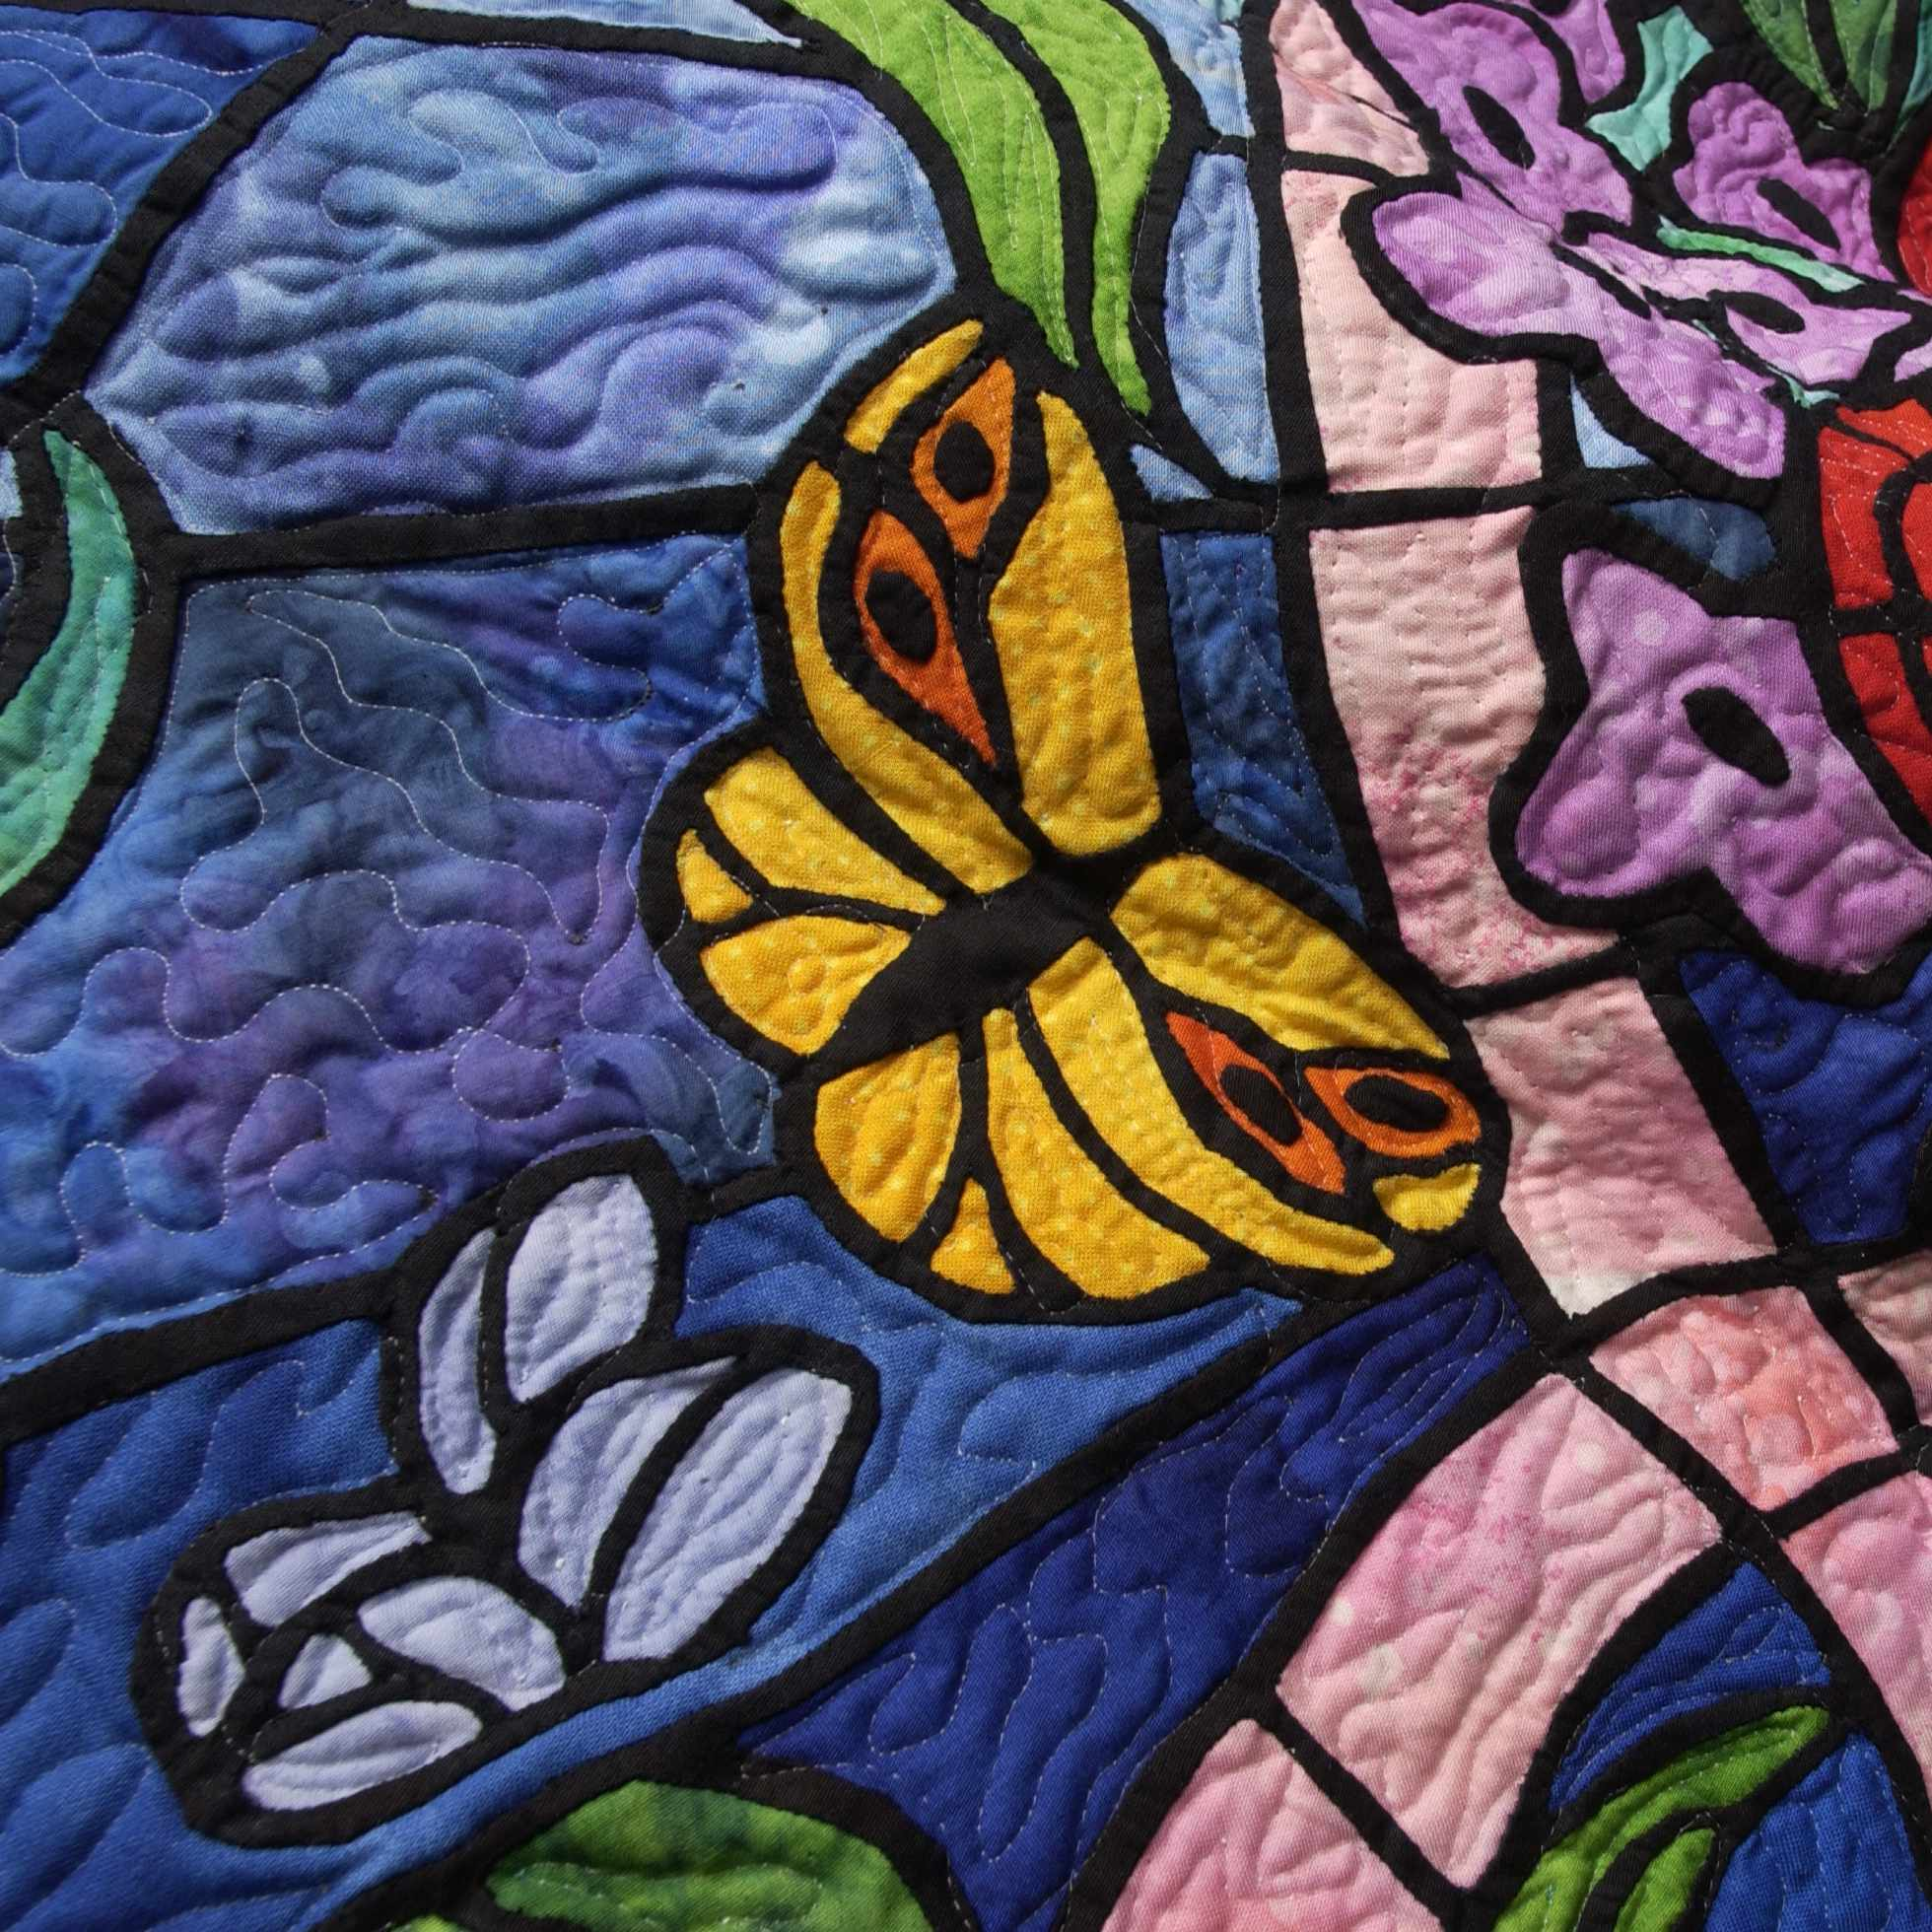 Mayo Clinic Women's Cancer Program quilt